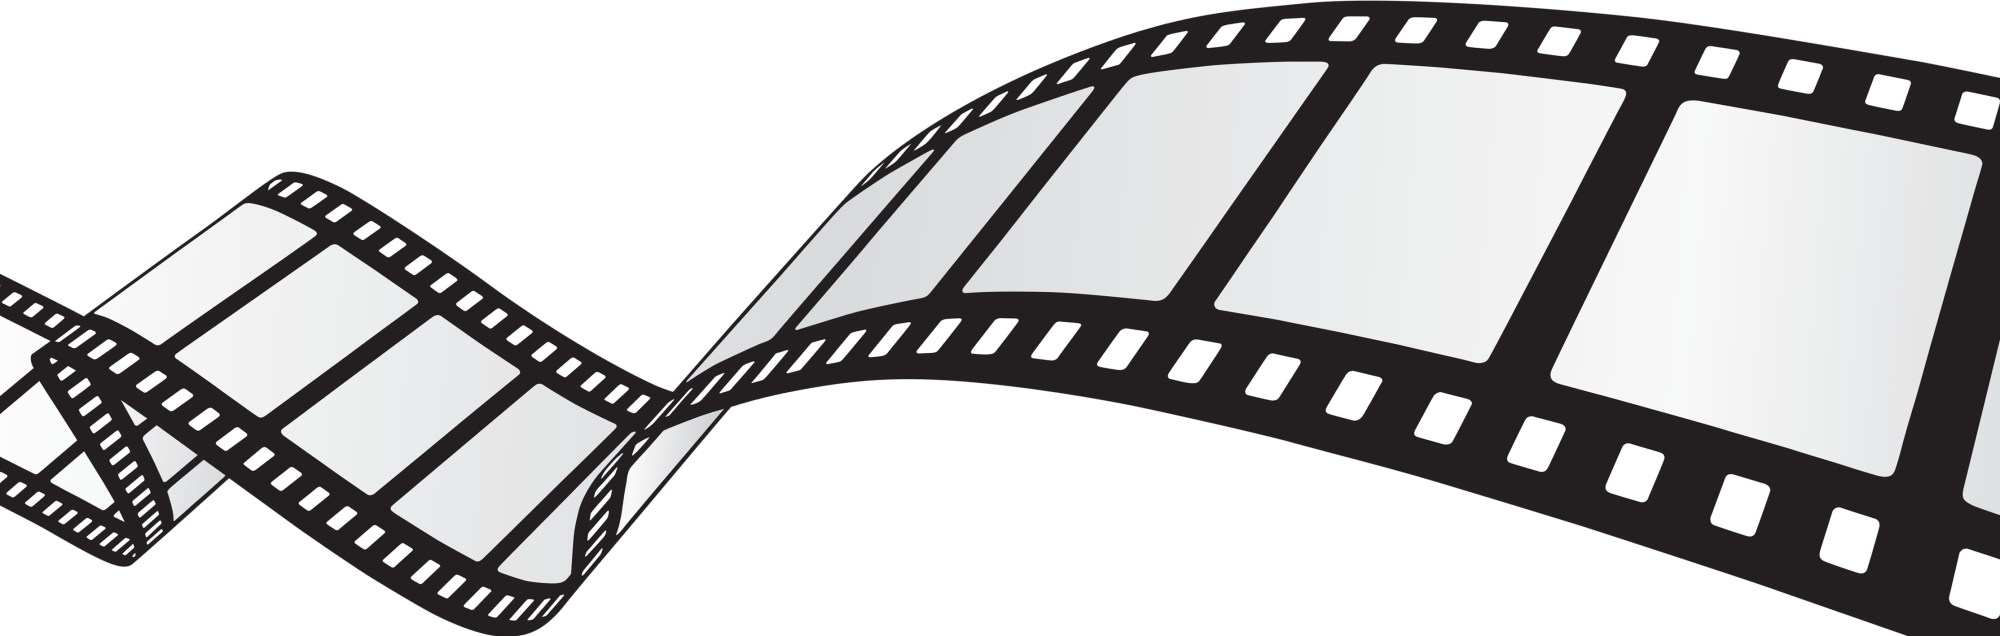 hight resolution of movie clipart